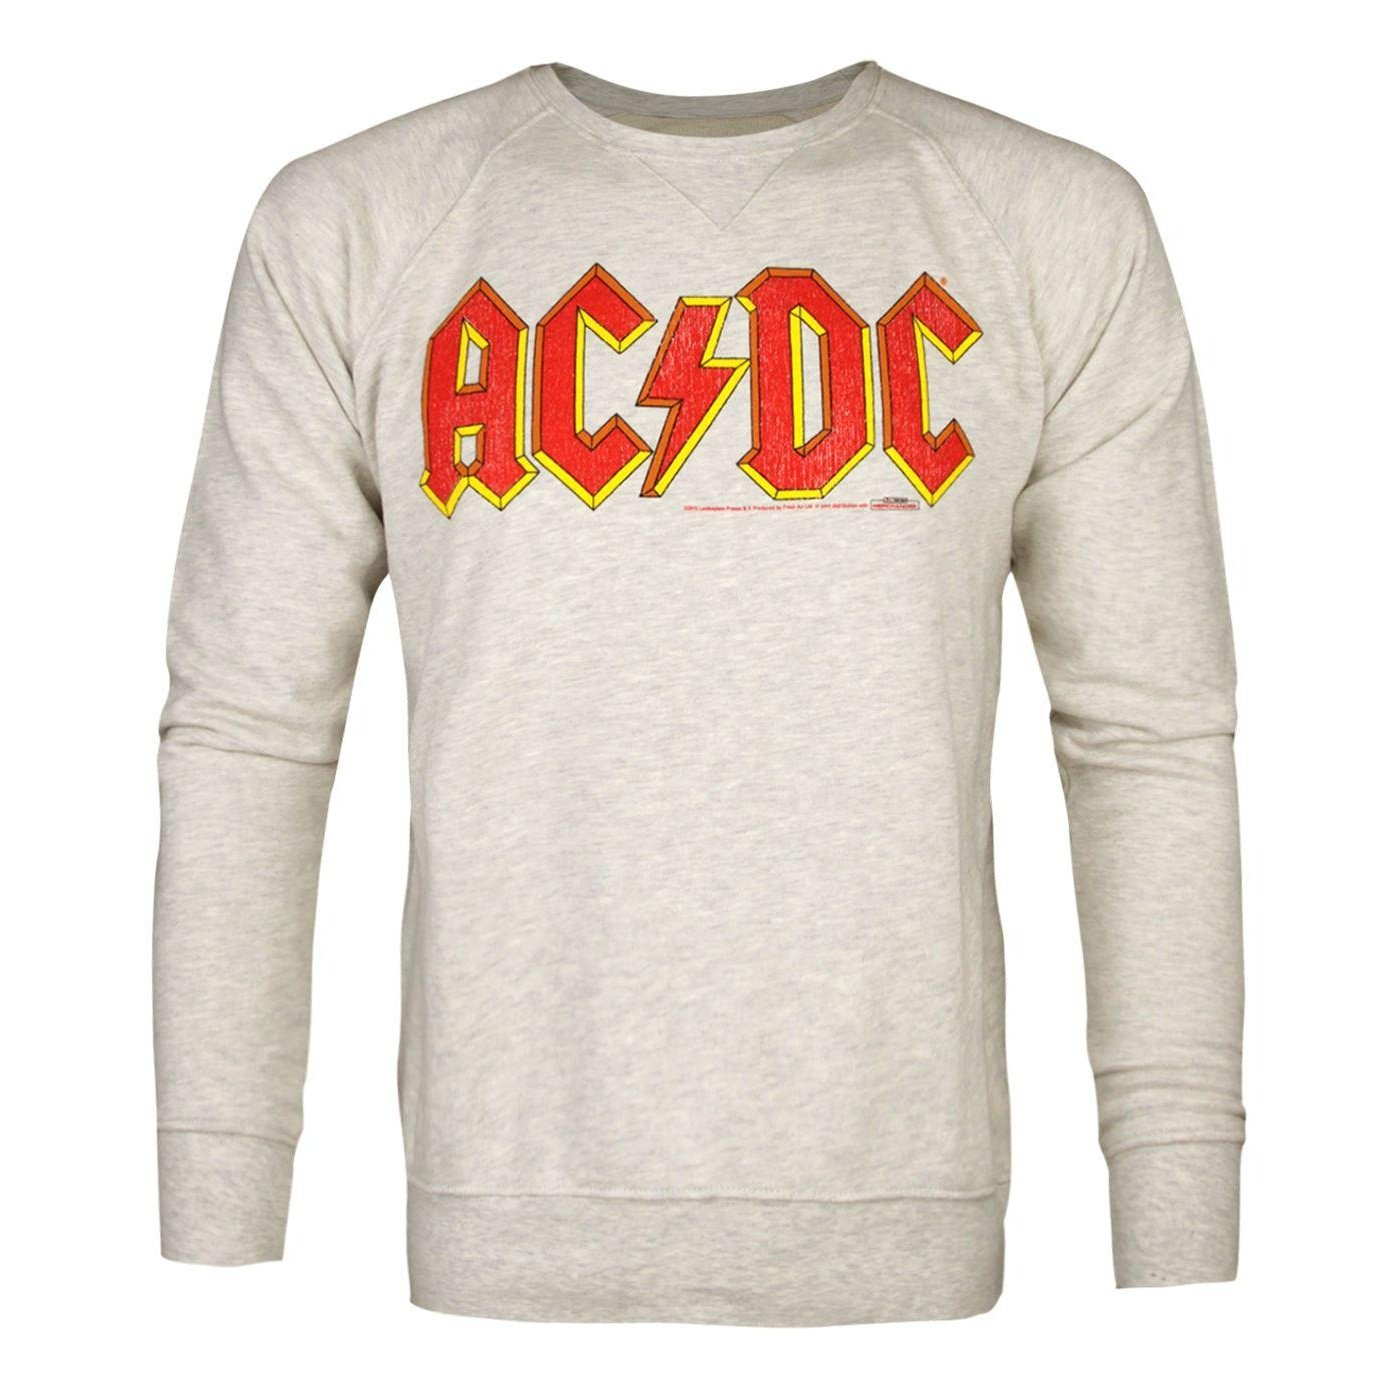 Amplified Official Mens AC/DC Comics Logo Sweatshirt UTNS4965_1